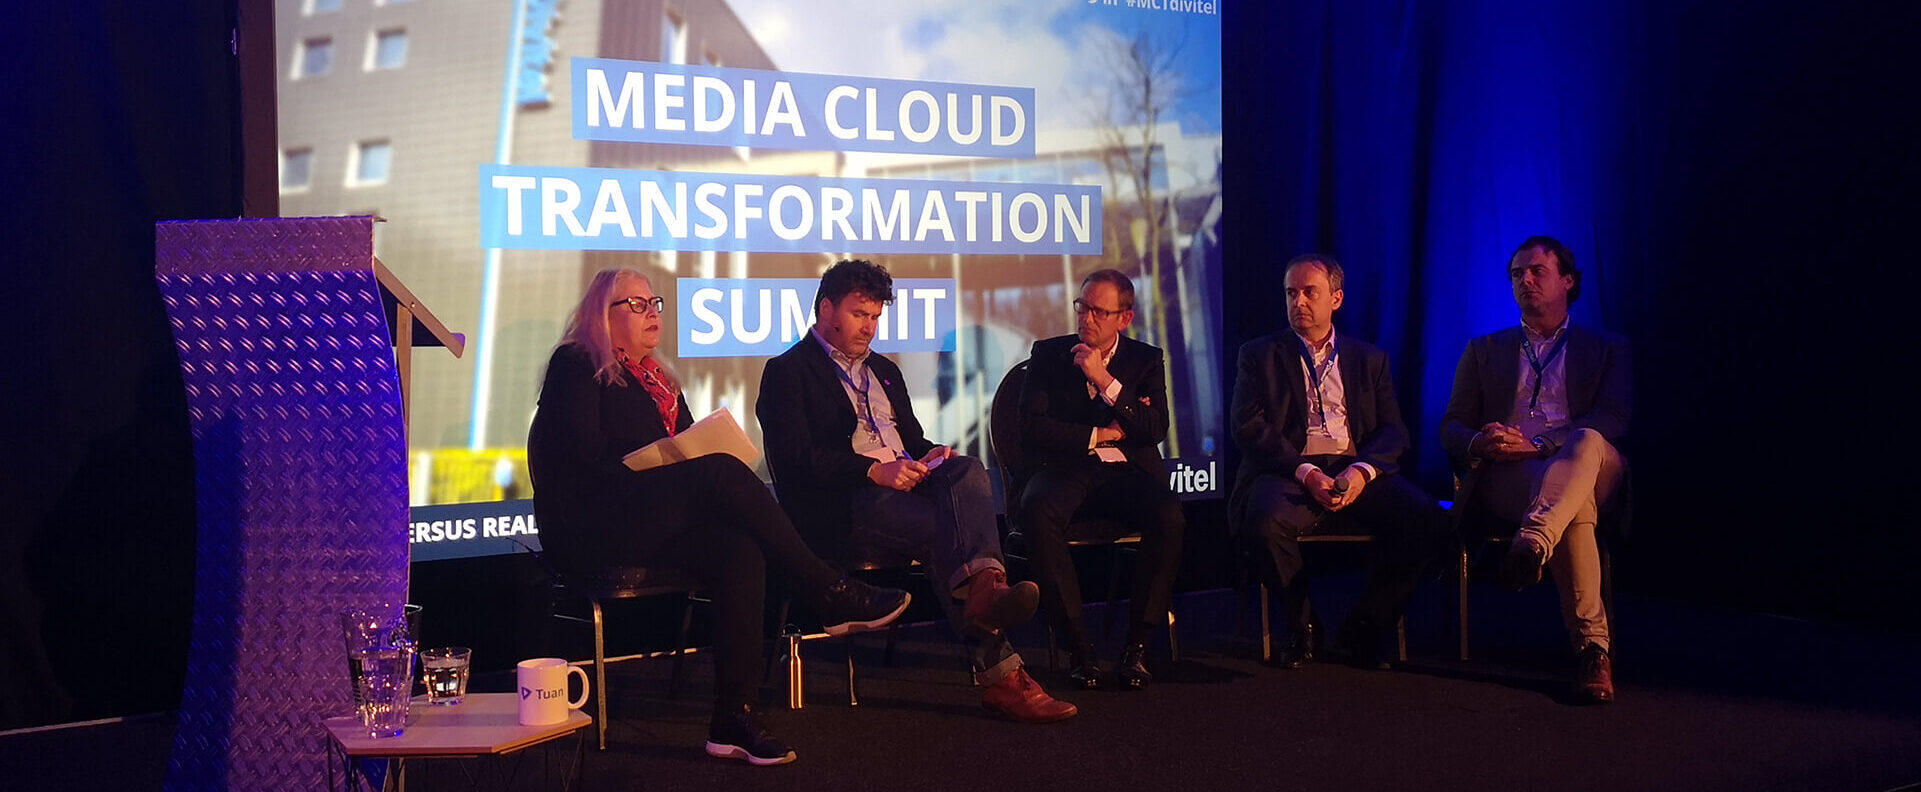 Panel Discussing Cloud summit